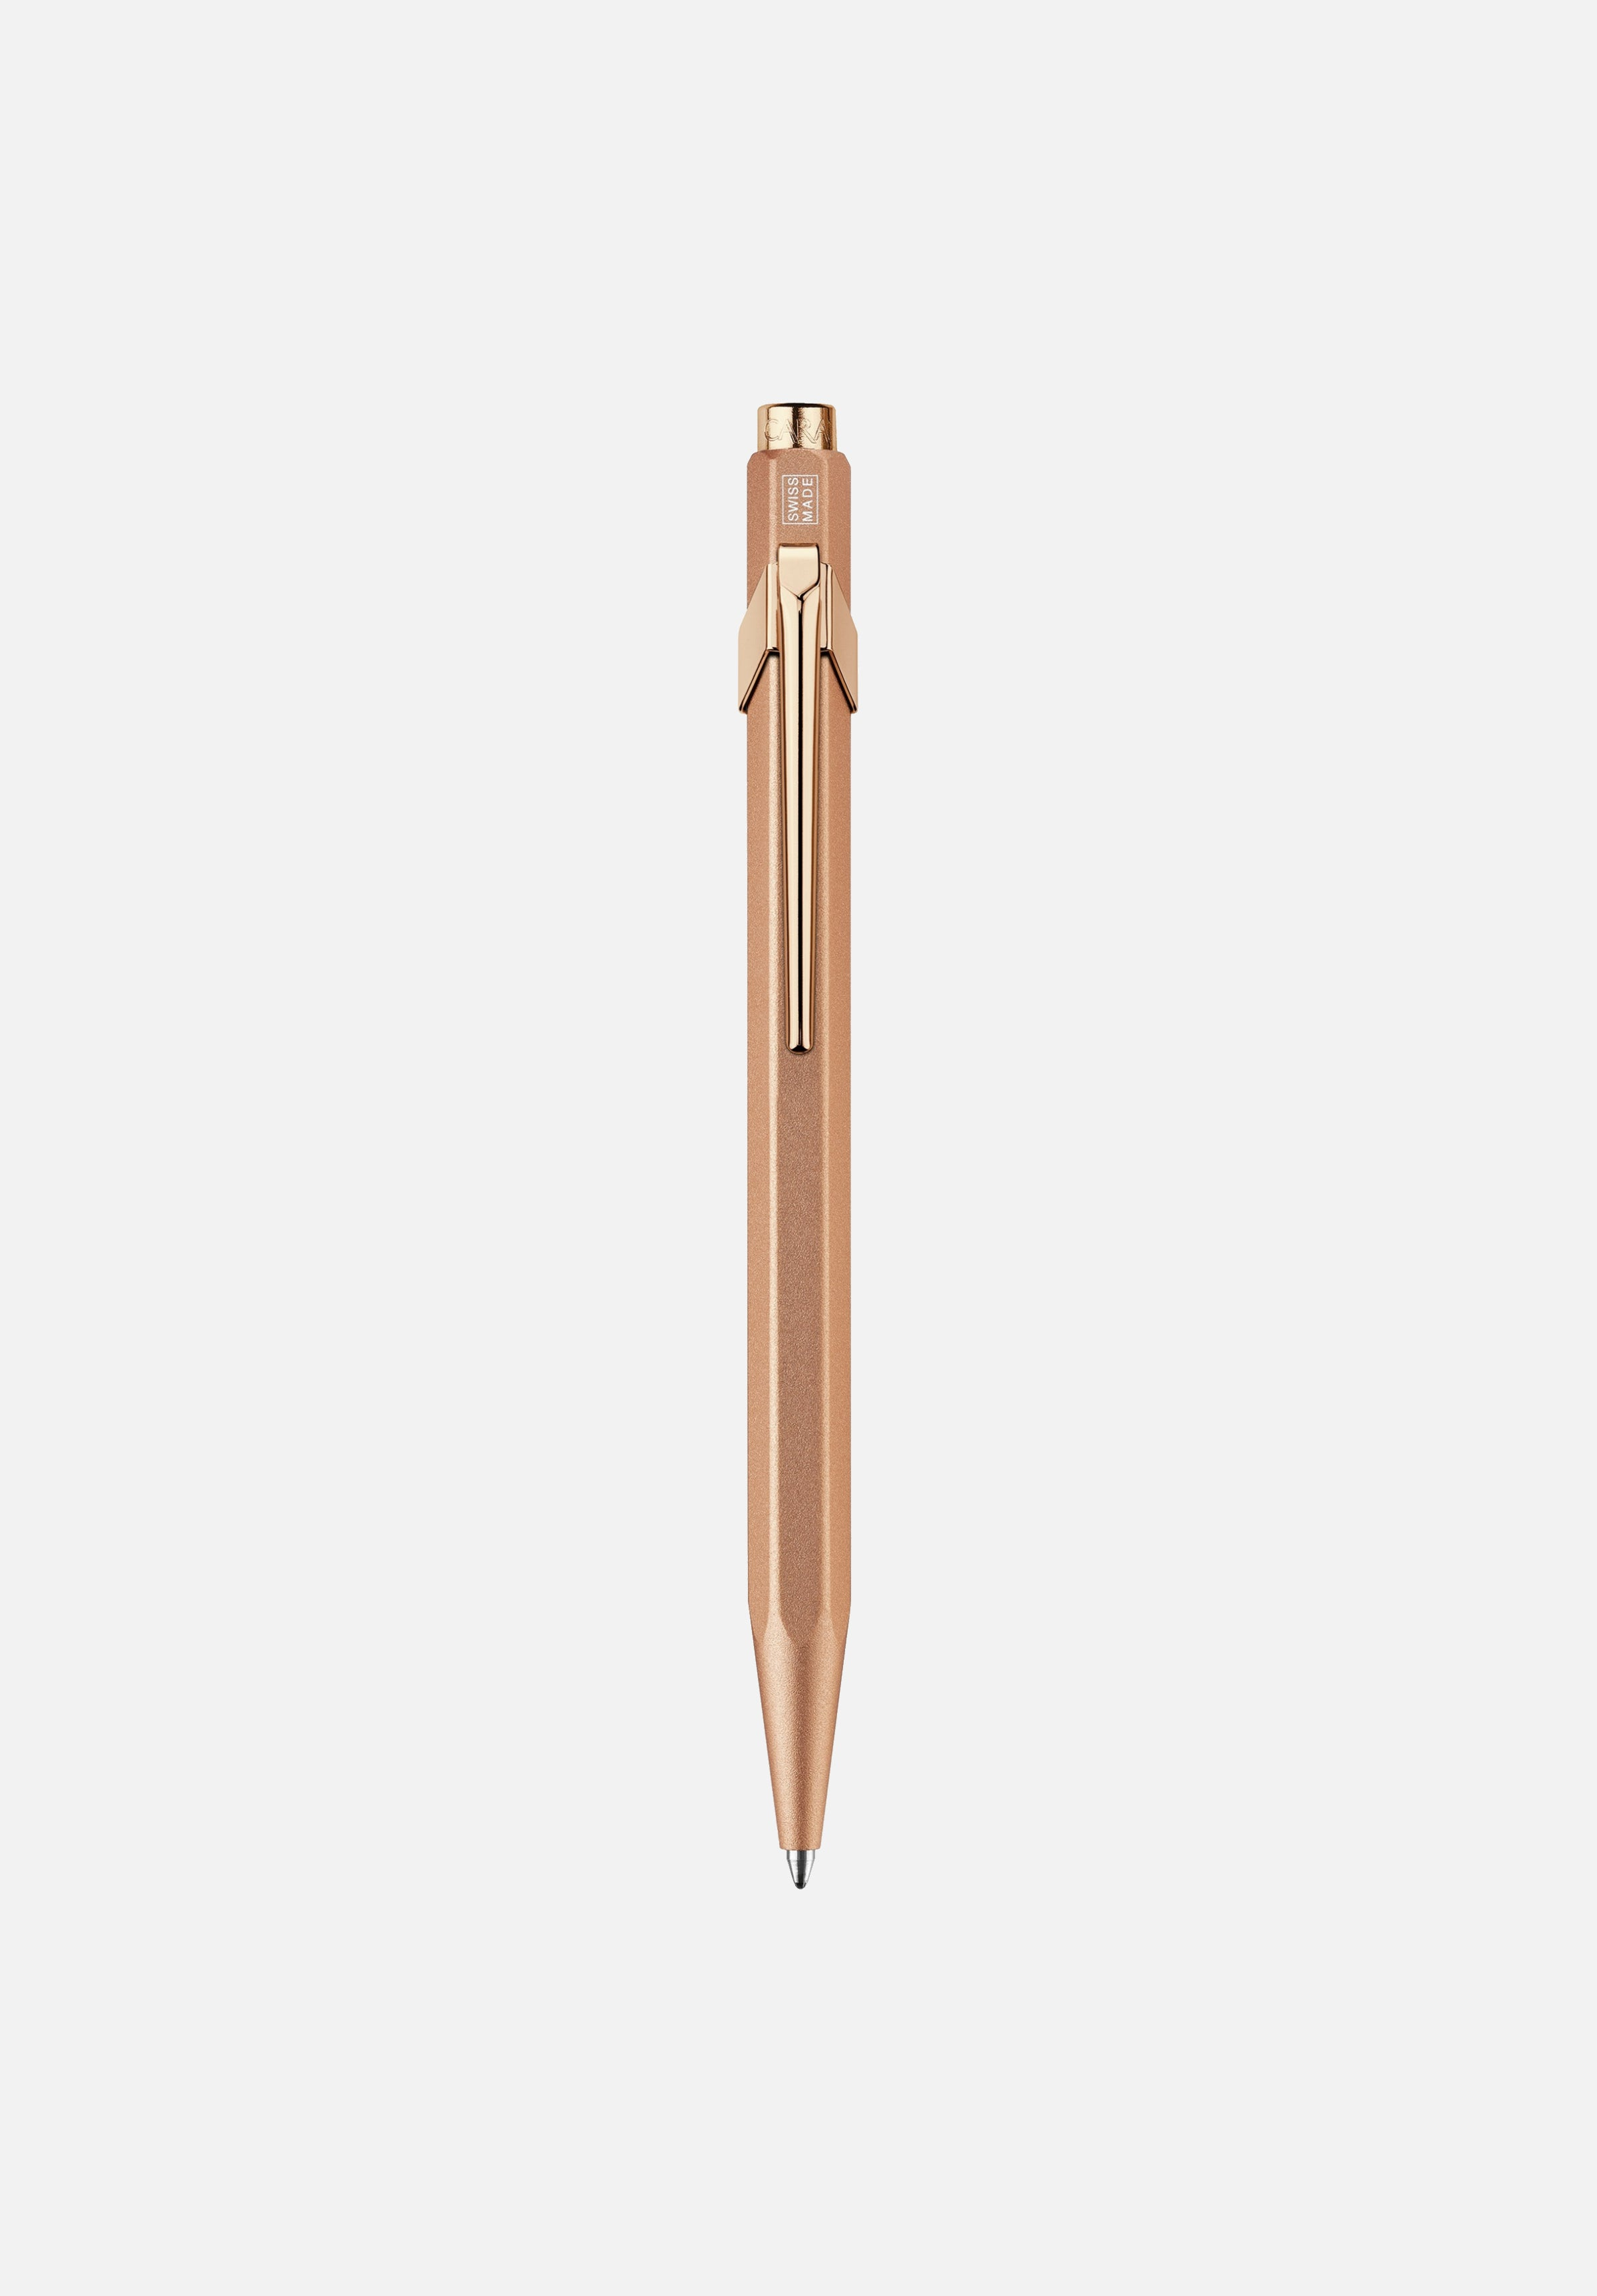 849 Ballpoint Pen Brut Rose-Caran d'Ache-Average